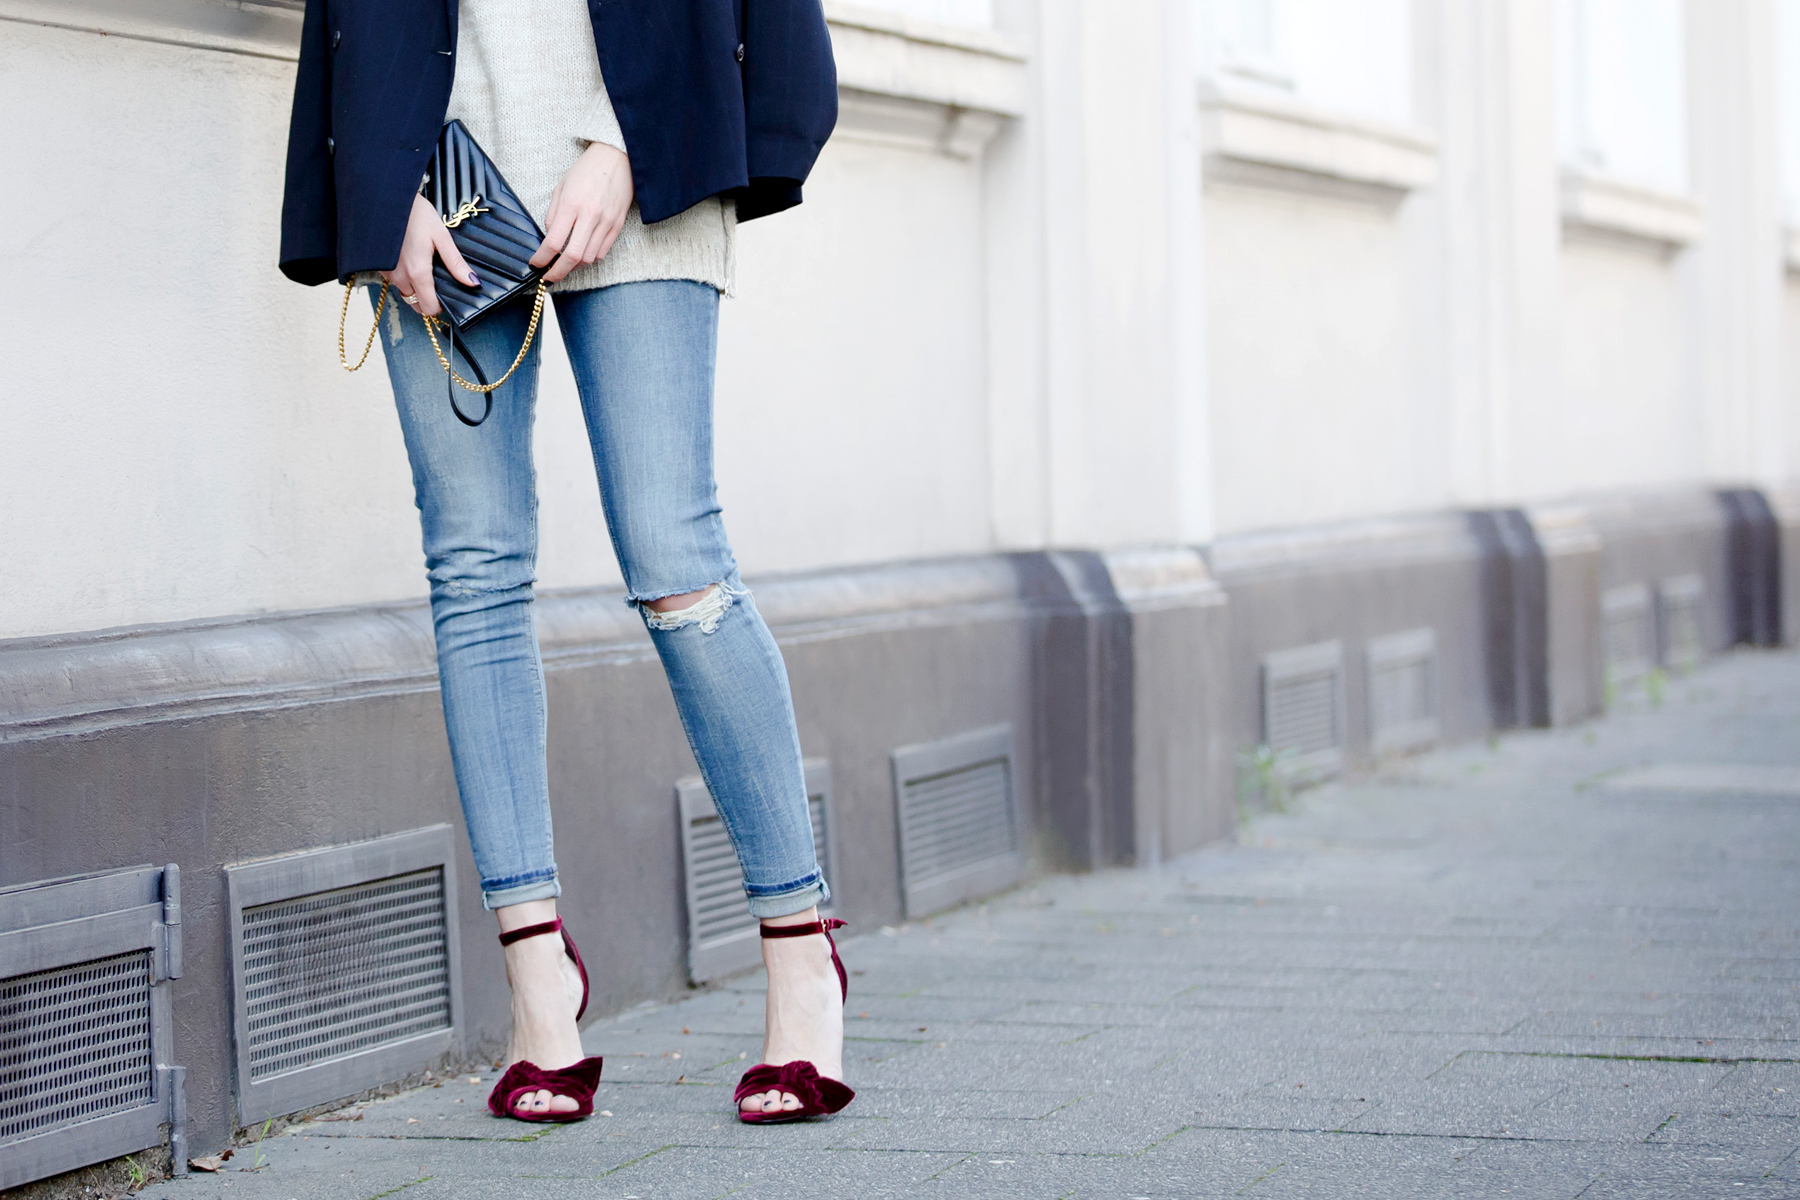 outfit office christmas party casual and velvet red ruby high heels topshop love cute blazer ysl saint laurent paris monogram bag rosefield watch ricarda schernus cats & dogs fashionblogger ootd outfitblogger blue jeans styleblogger dusseldorf nrw  3